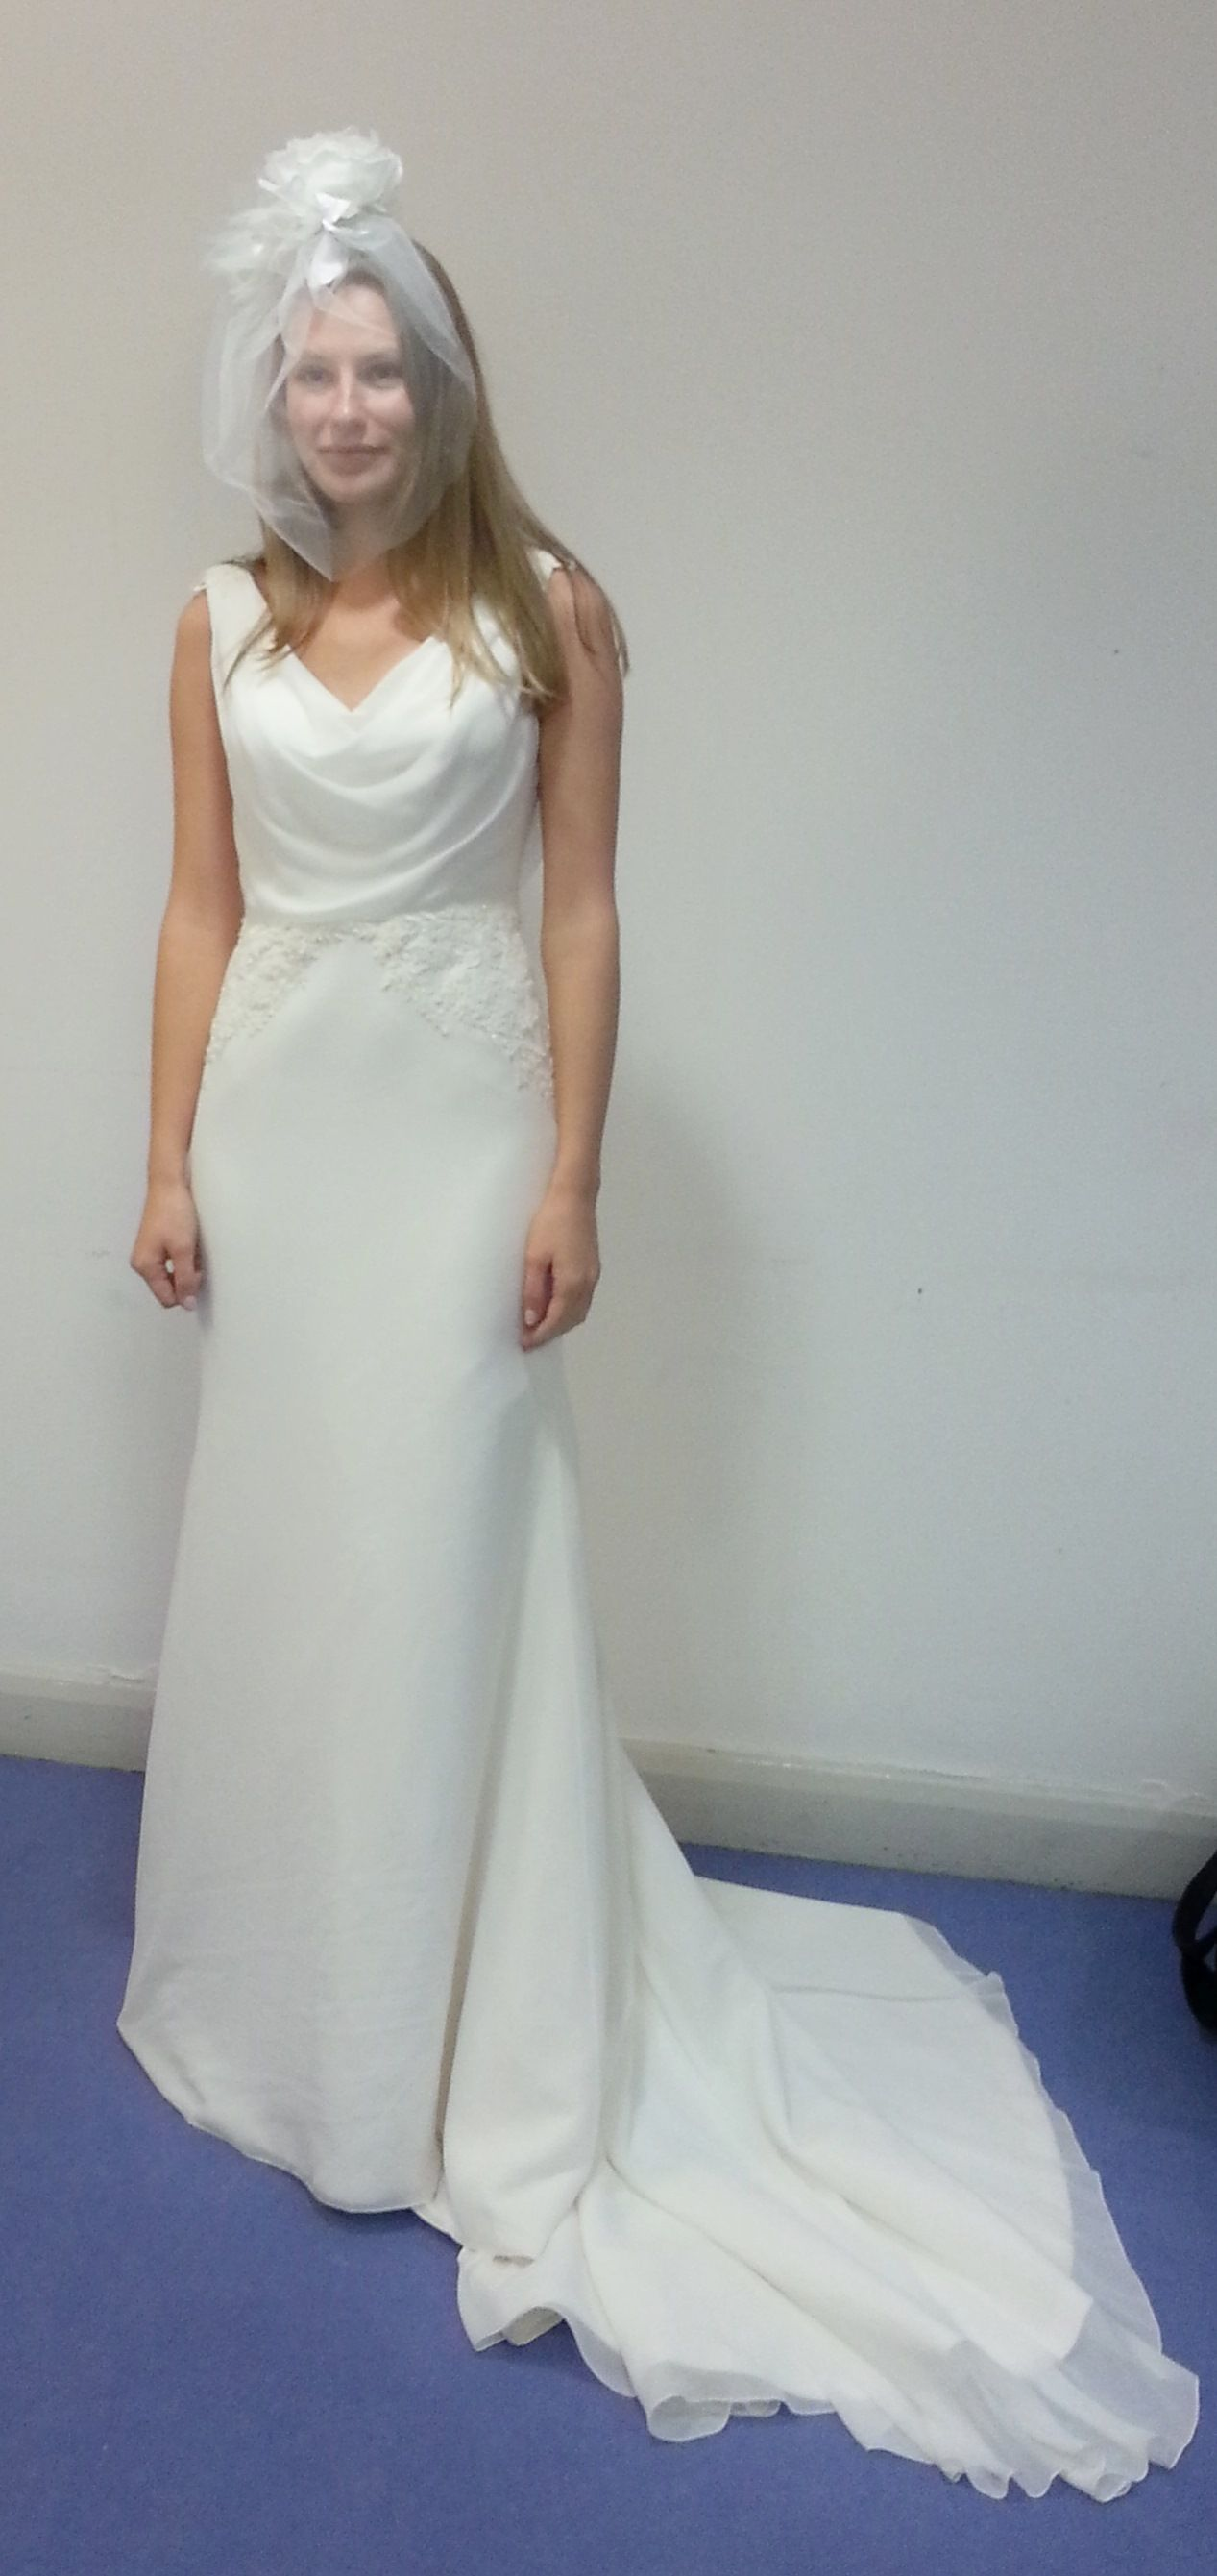 One of our models wearing a beautiful bridal gown from The Scottish ...